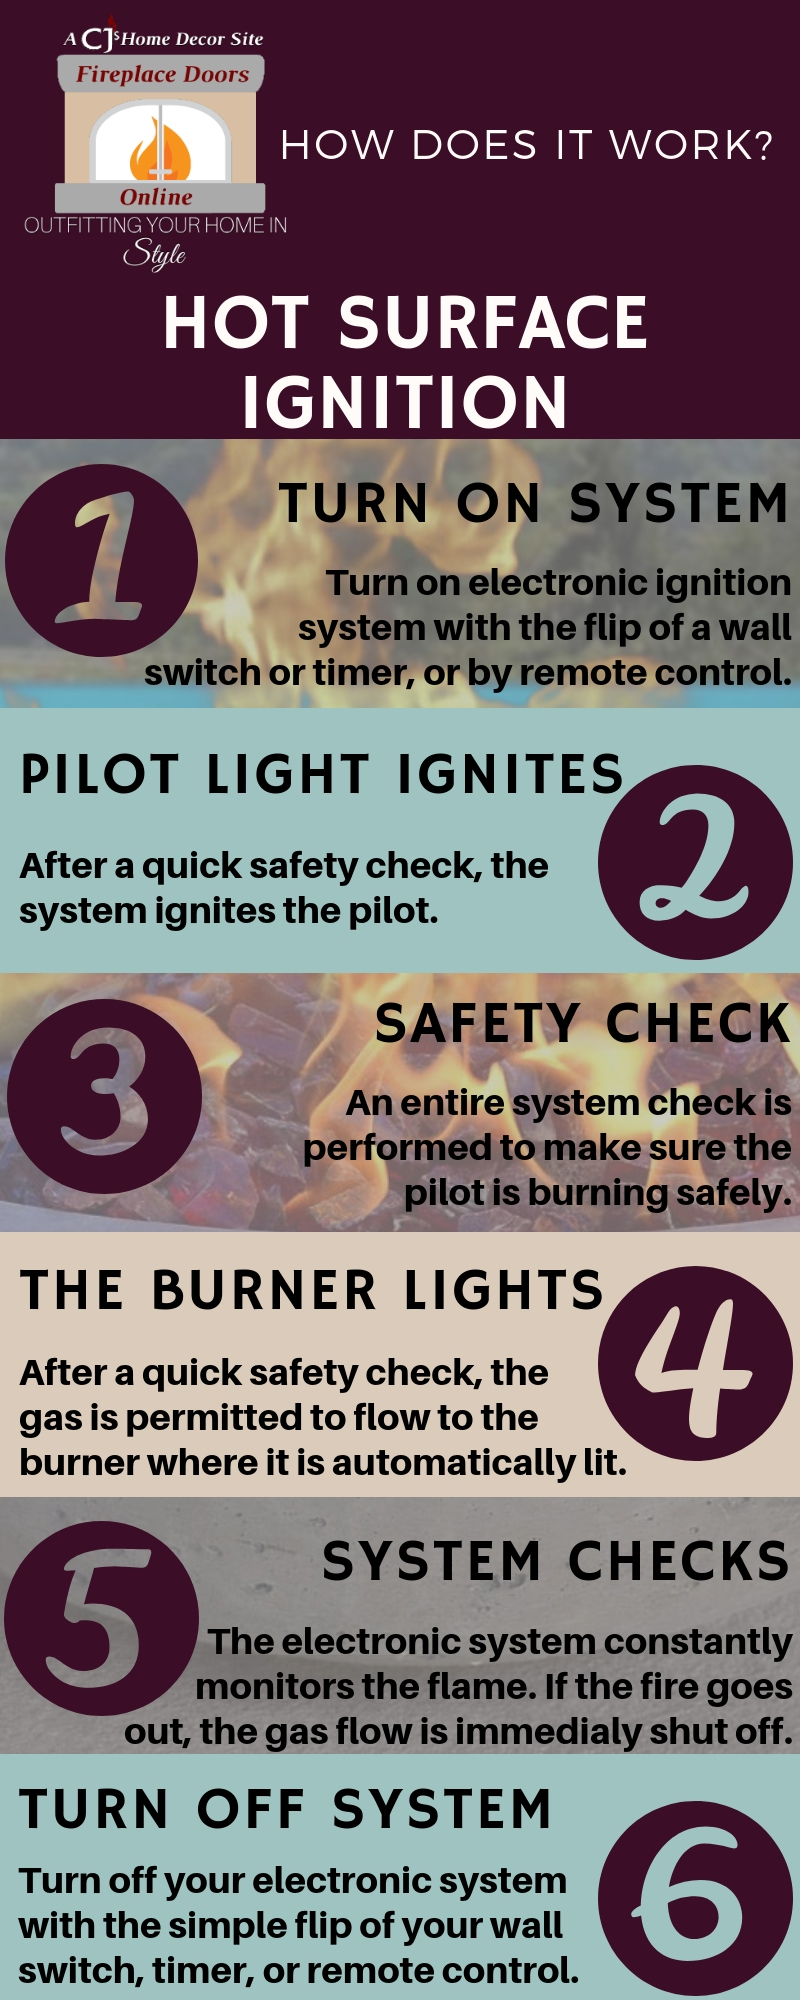 Lighting your hot surface ignition system is as easy as a flip of a switch!